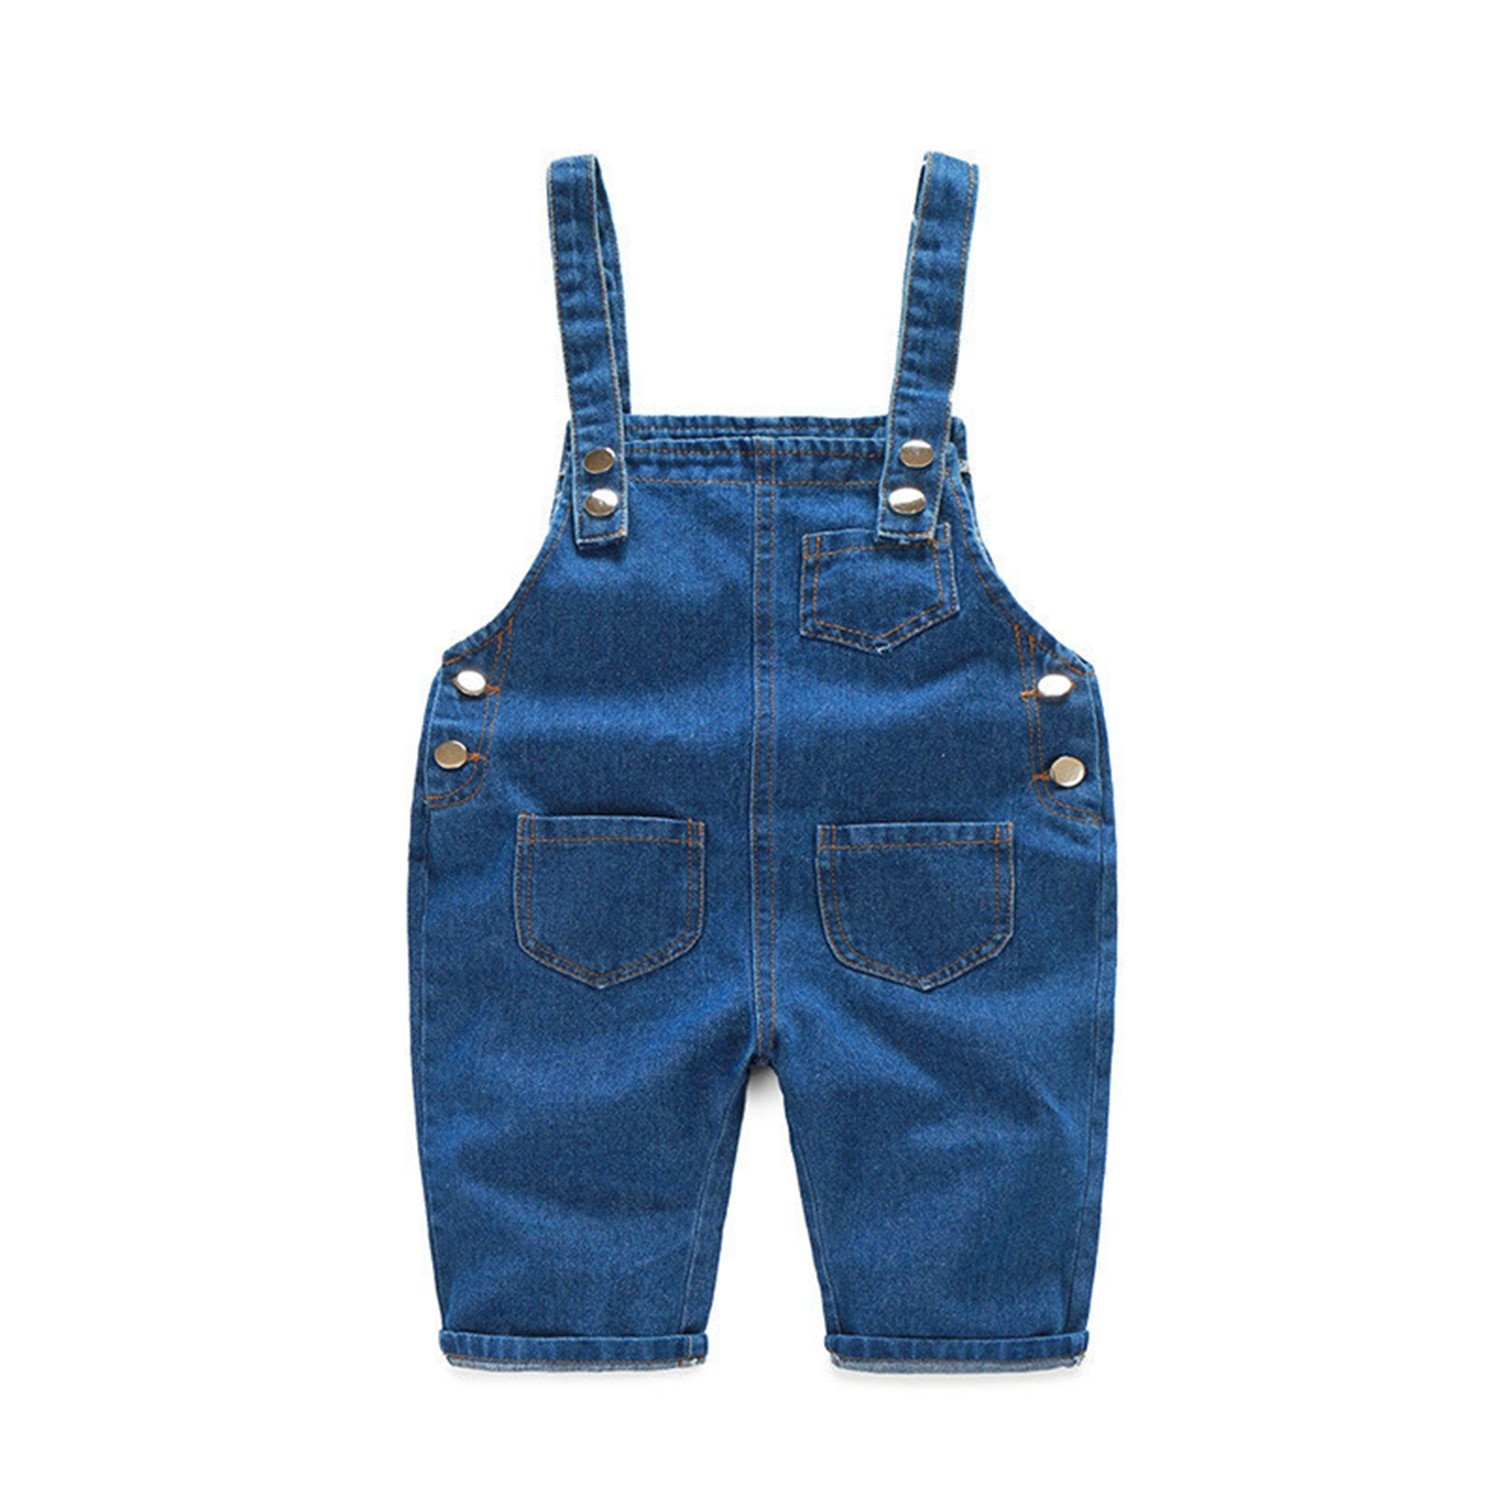 Hoared New New Denim Overalls For Girls Spring Pants For Baby Boy Beach Shorts Summer Denim Shorts Blue 3T